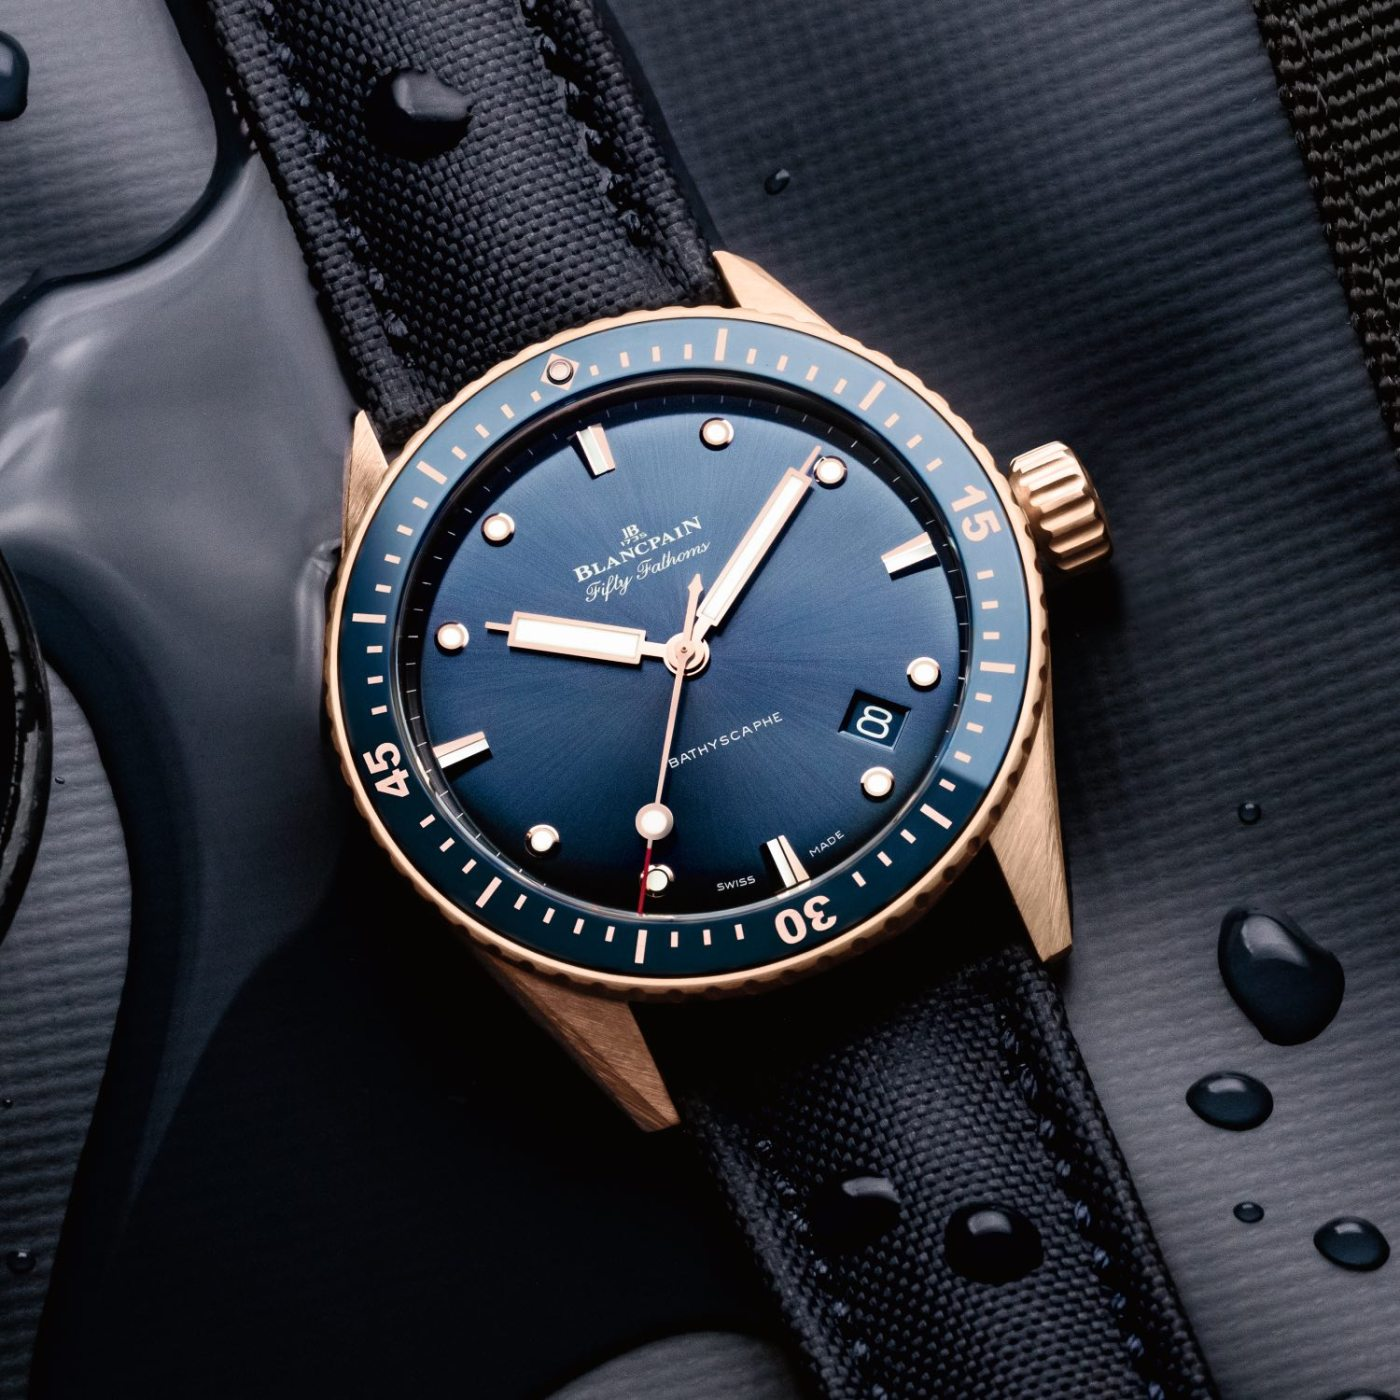 Fifty Fathoms Bathyscaphe in Sedna Gold